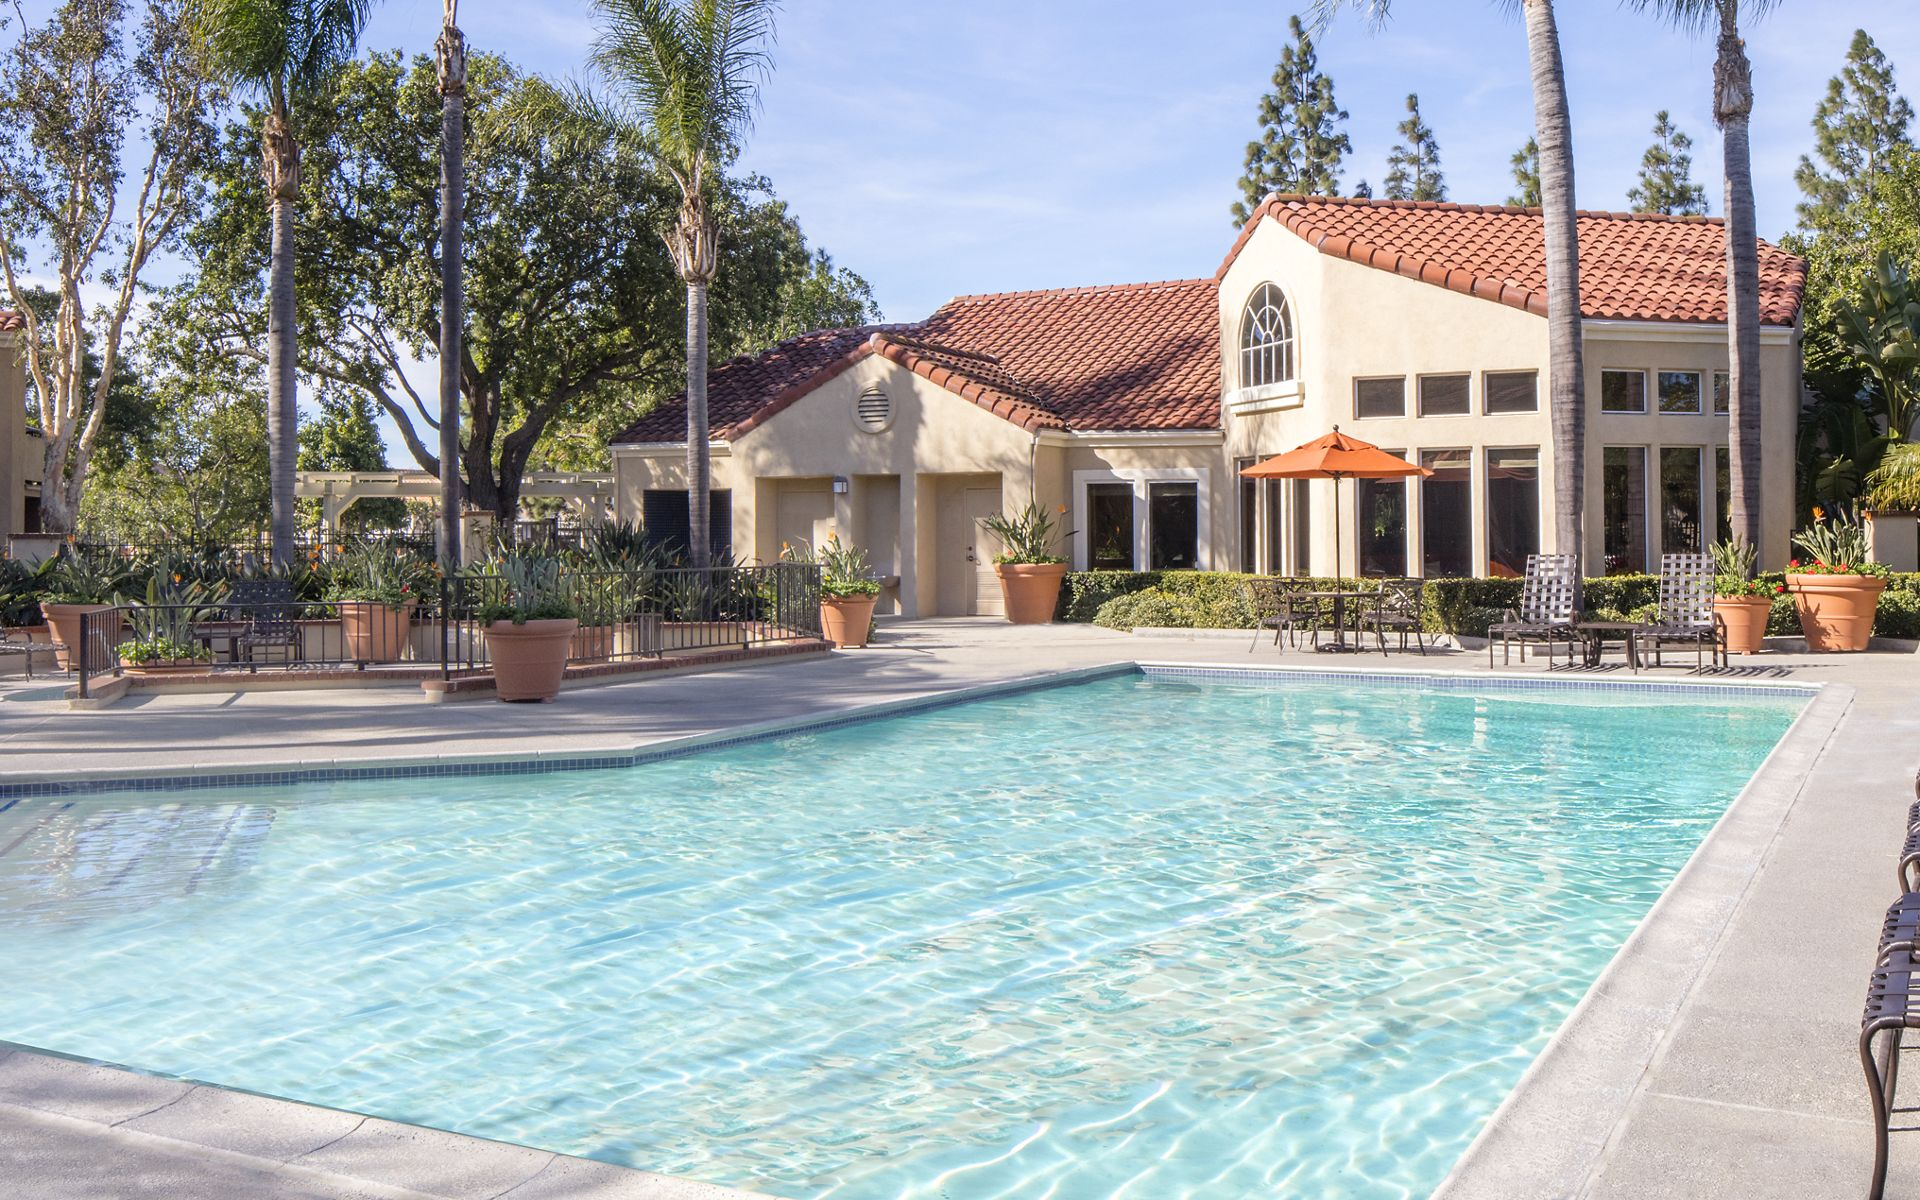 Pool view at San Marino Villa Apartment Communities in Irvine, CA.